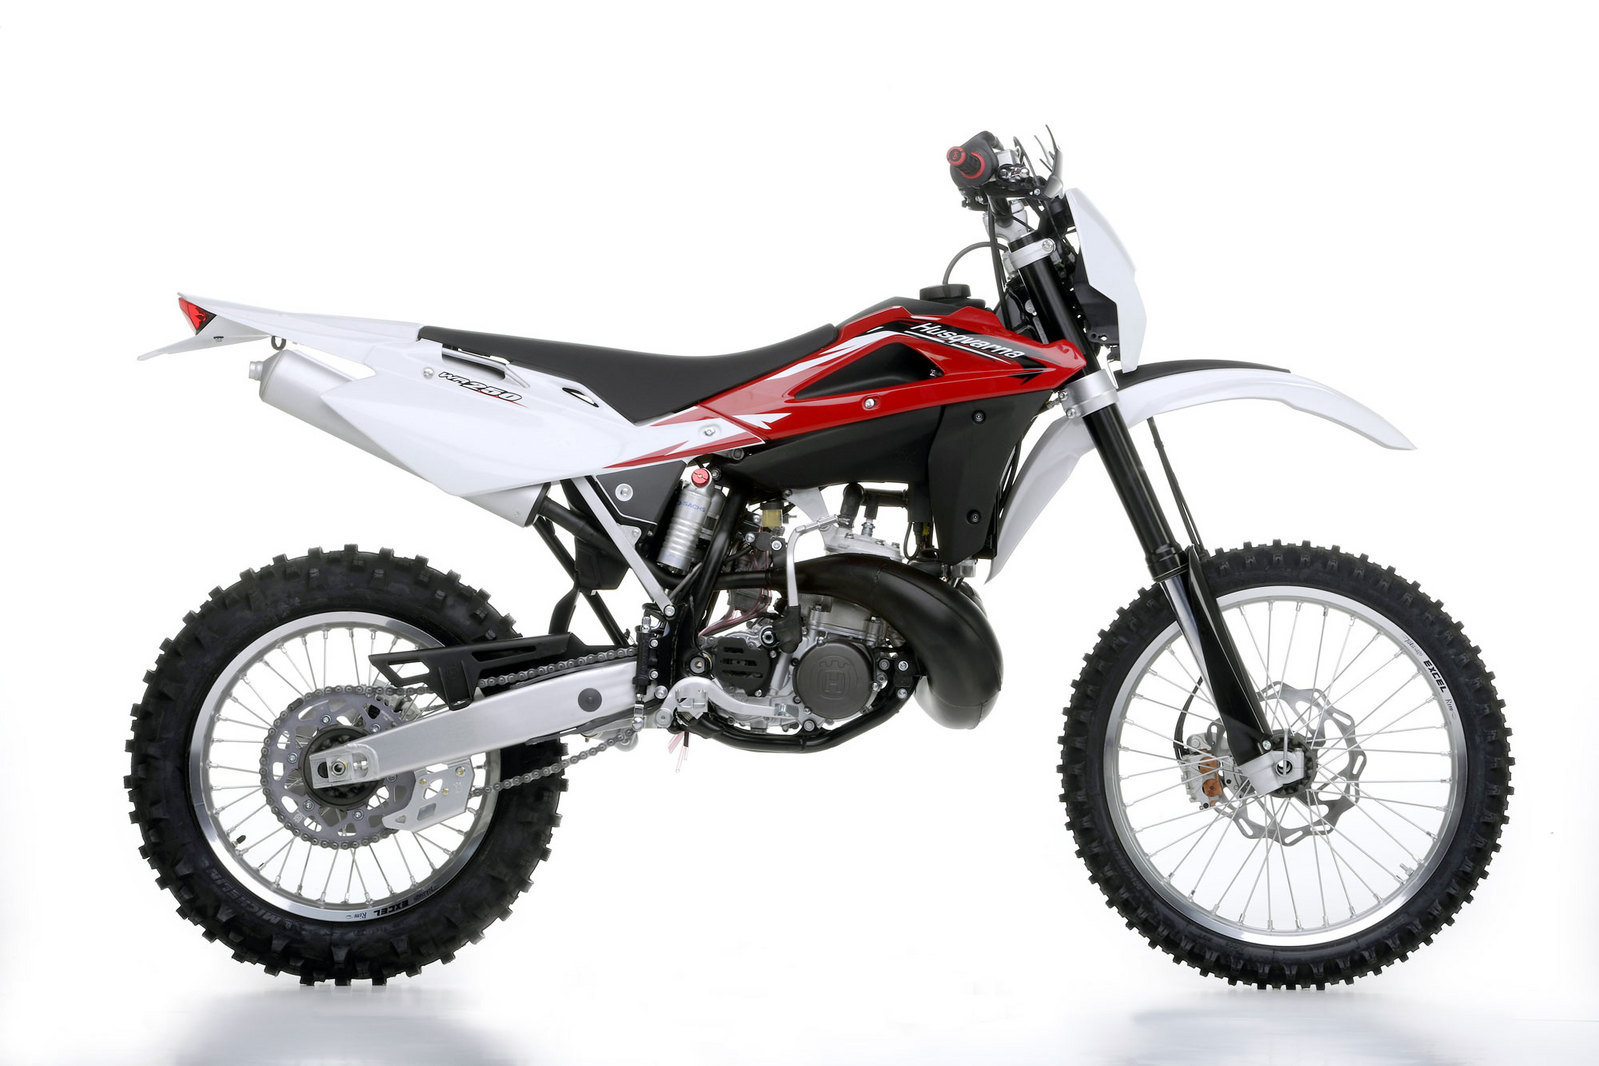 2013 husqvarna wr 250 picture 485628 motorcycle review. Black Bedroom Furniture Sets. Home Design Ideas